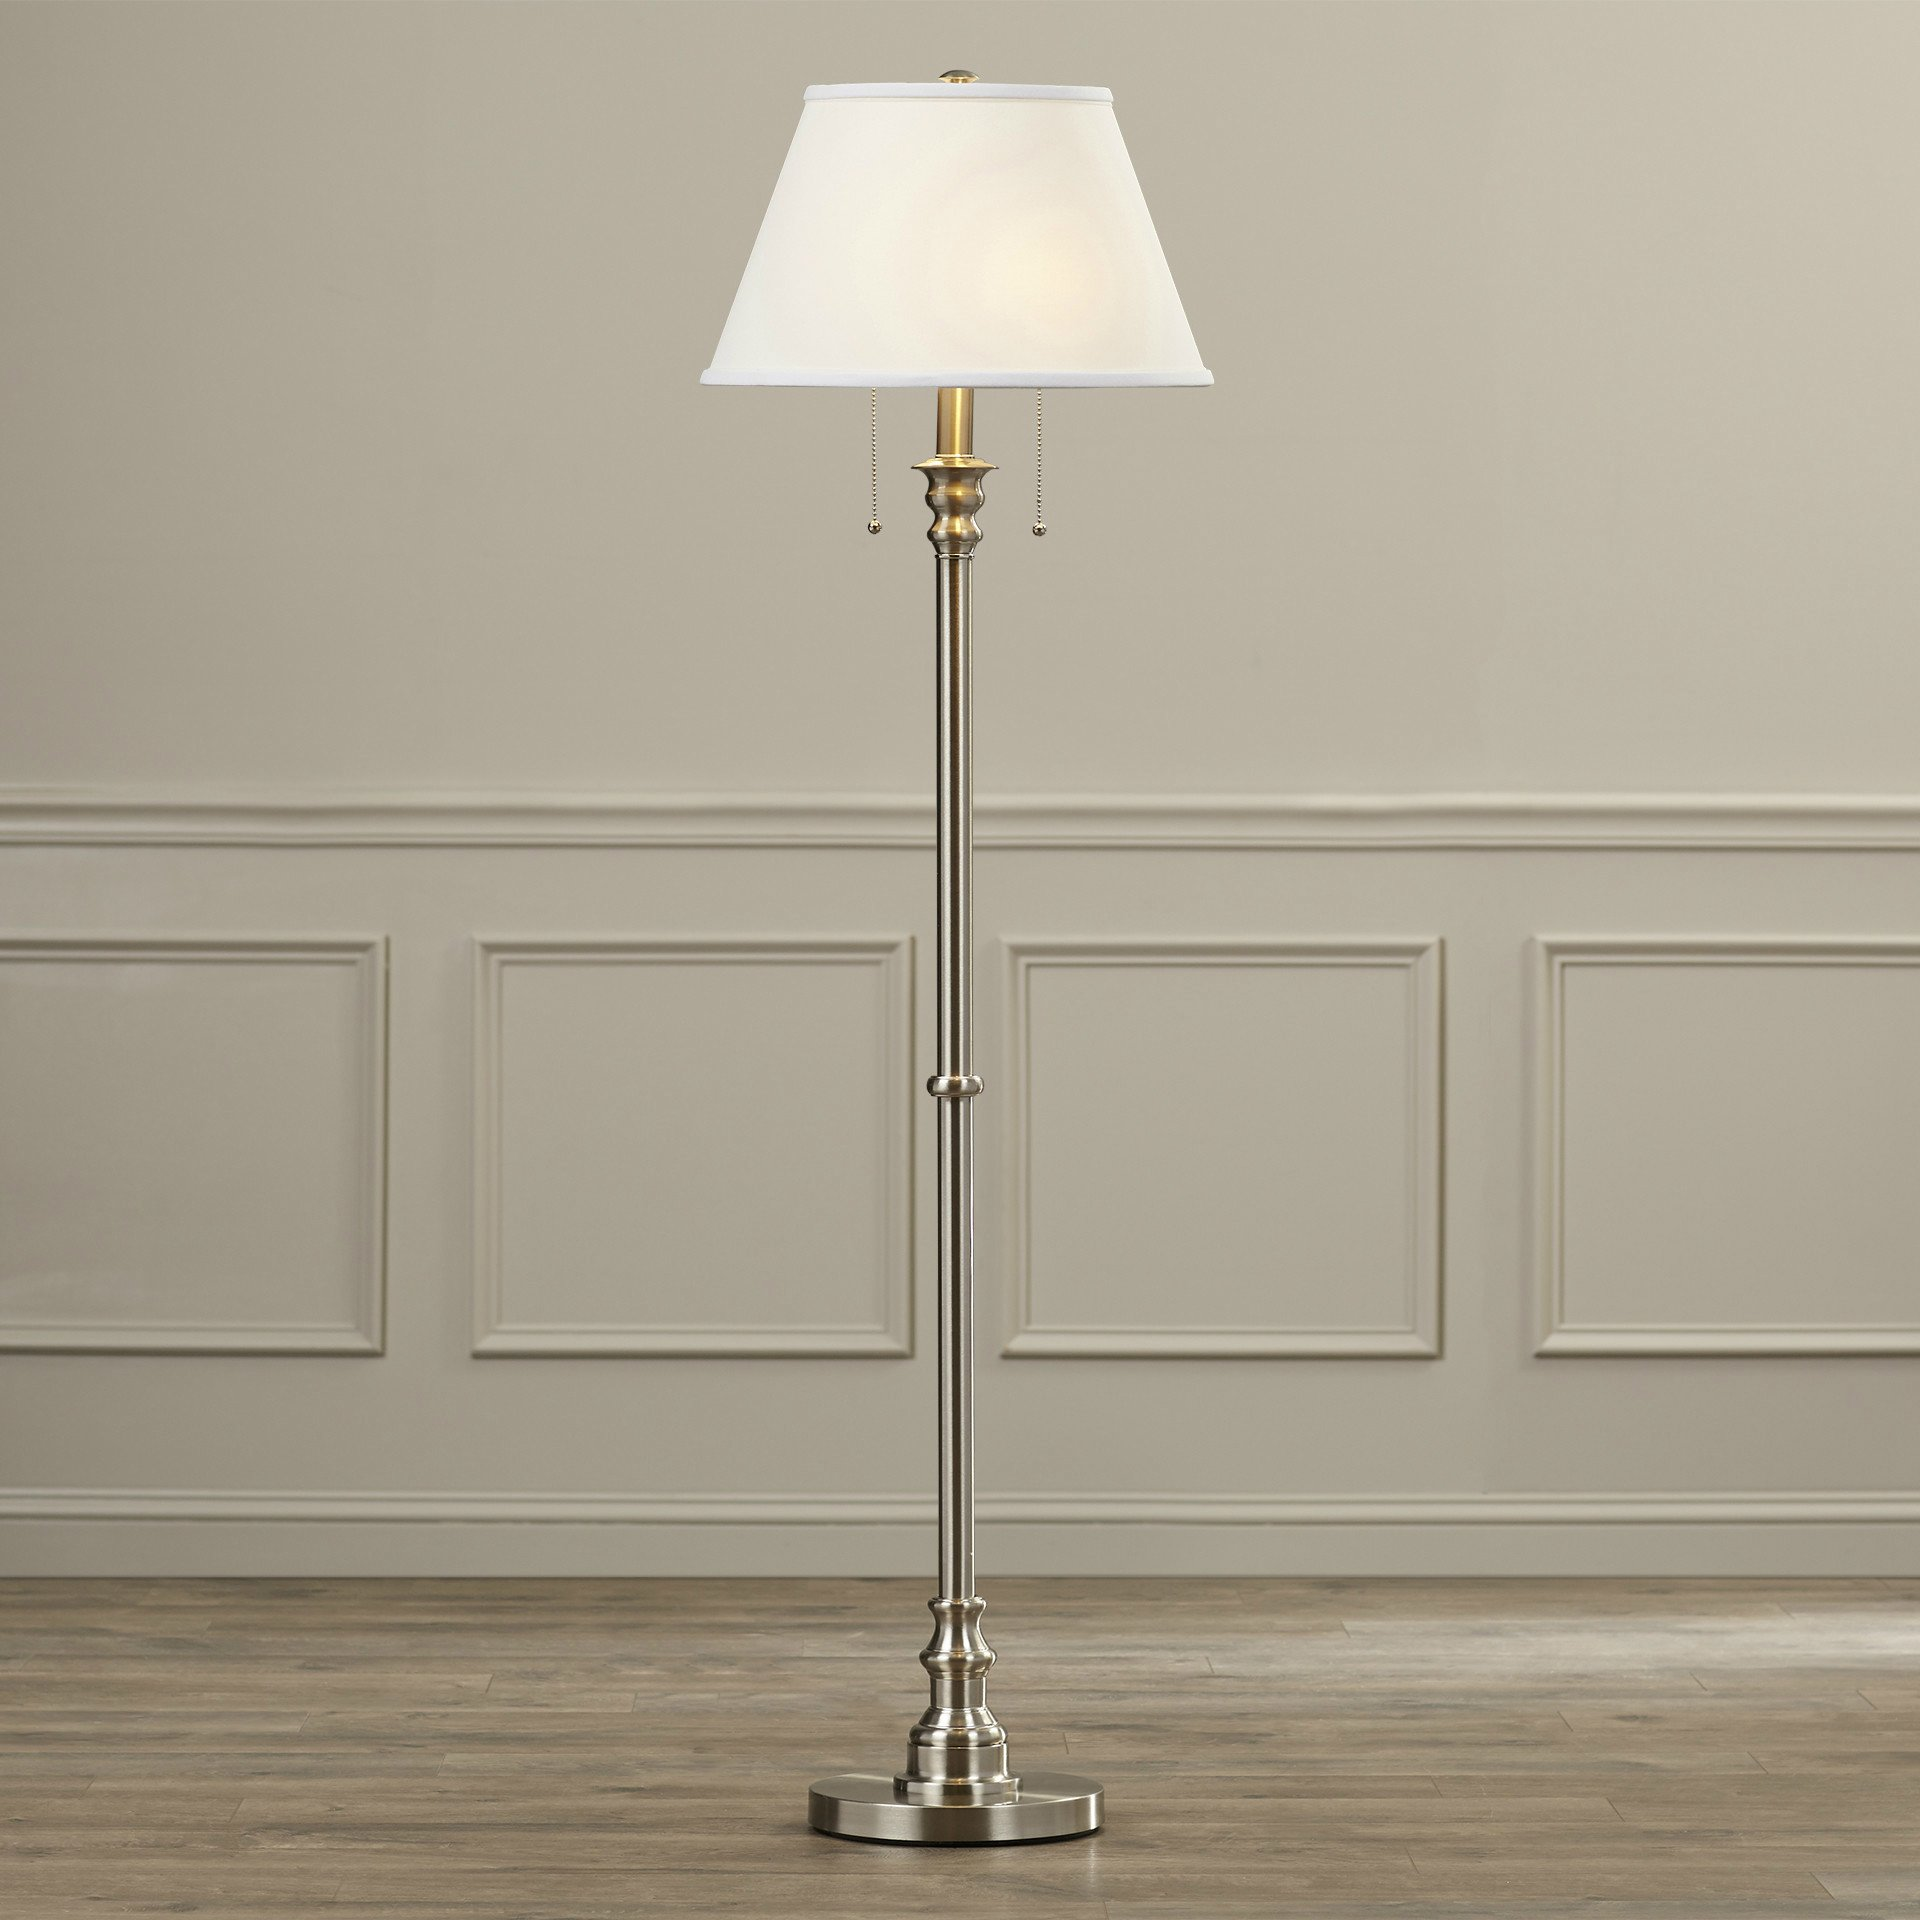 White Classic Empire Shade Floor Lamp with Pull Chain For Reading Corner - 59.5 Inch Tall, Brushed Steel Finish